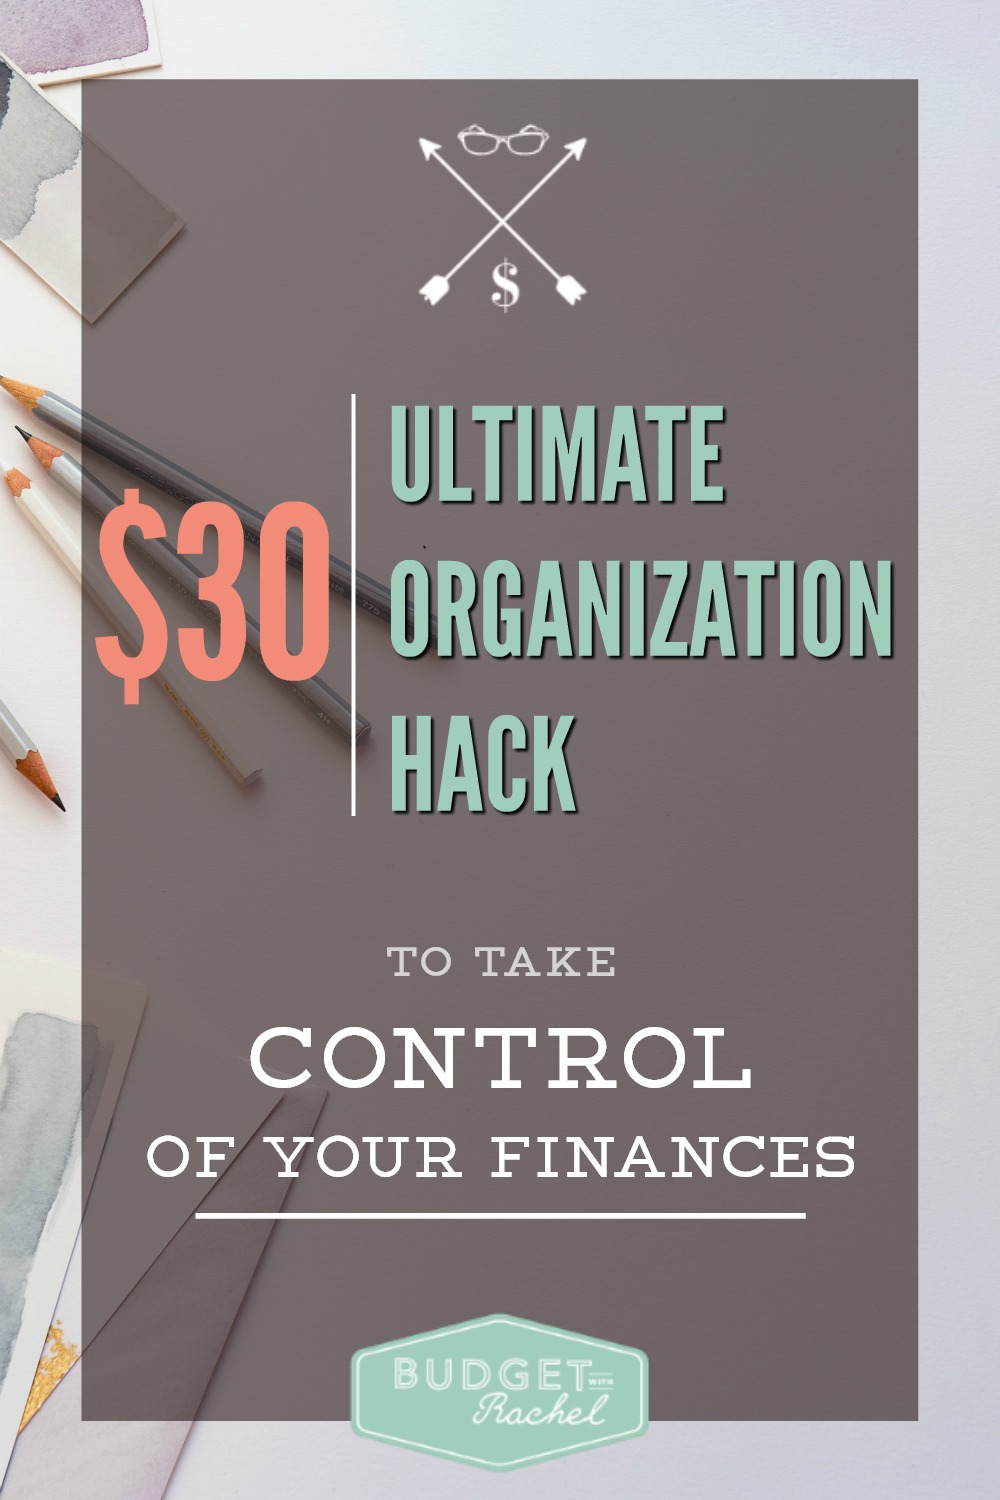 Organize Your Financial Life for $30 or Less  A Step-by-Step Guide to Creating the Ultimate Filing System That Makes Sense for Your Life. This system has been life changing! Not only was it super cheap to put together, it only took me a couple of hours to do it! Now I don't have to worry about where to put all my papers; they have a specific file to go to. The container is small enough I can store it inside my desk! Love this!